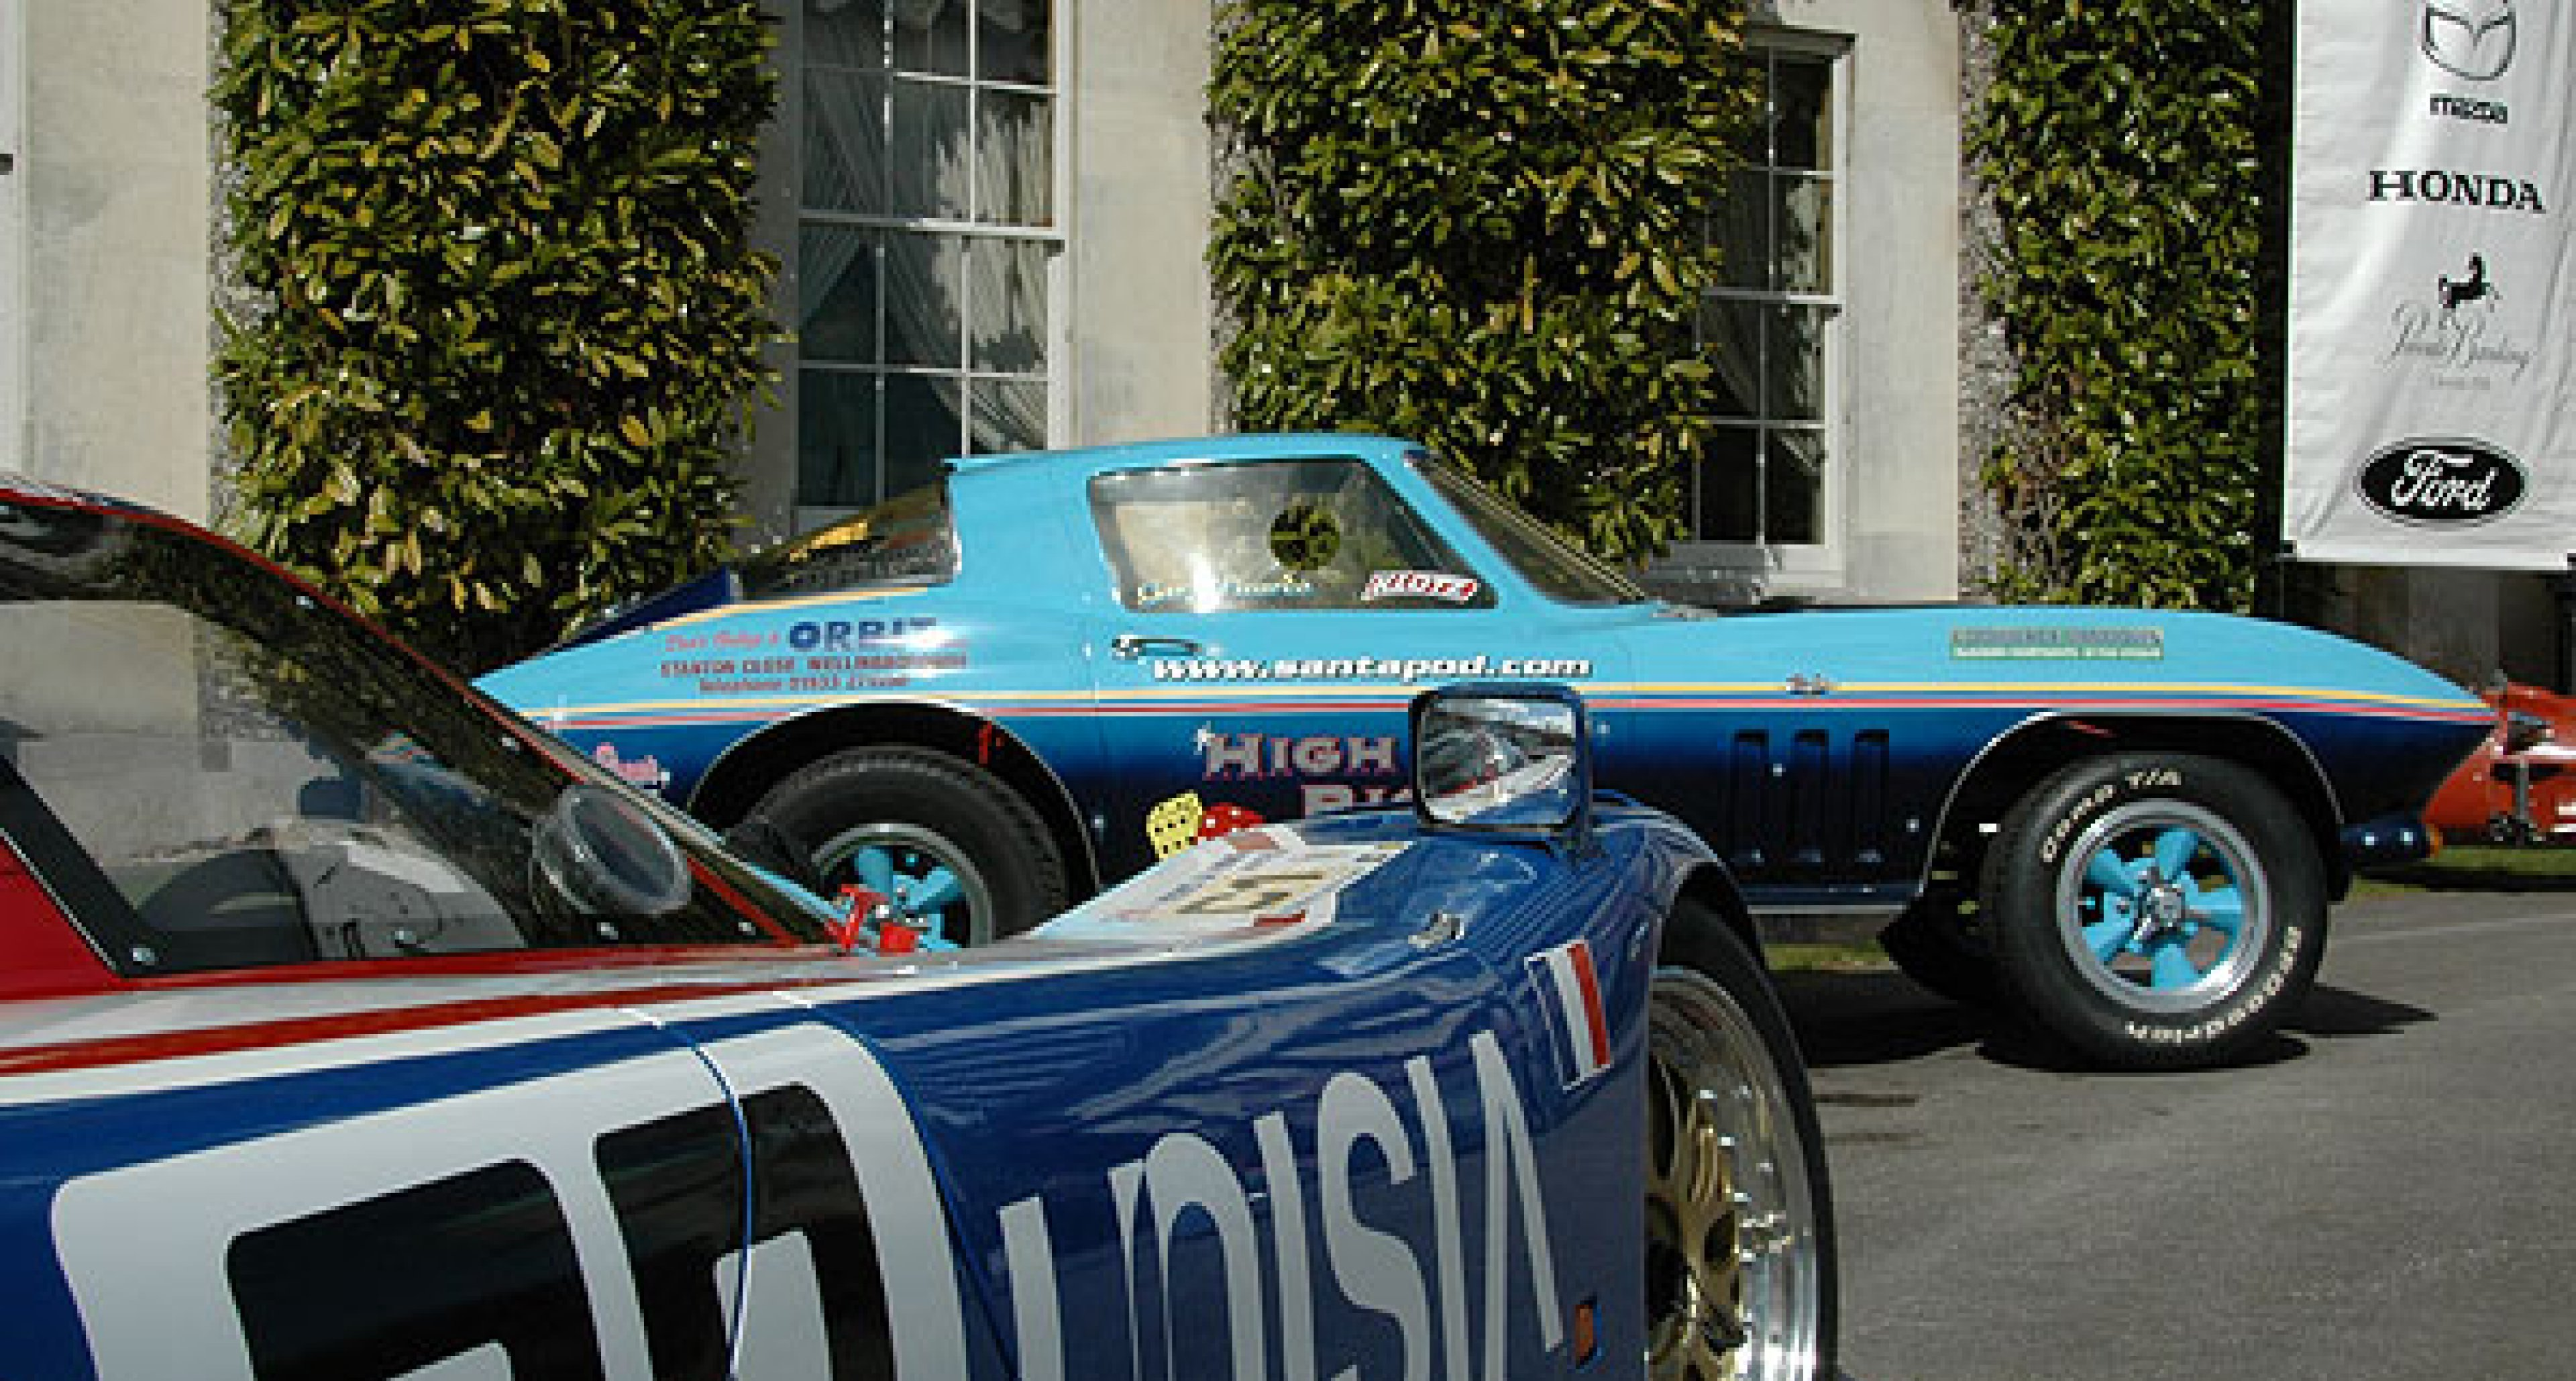 The 2007 Goodwood Festival of Speed